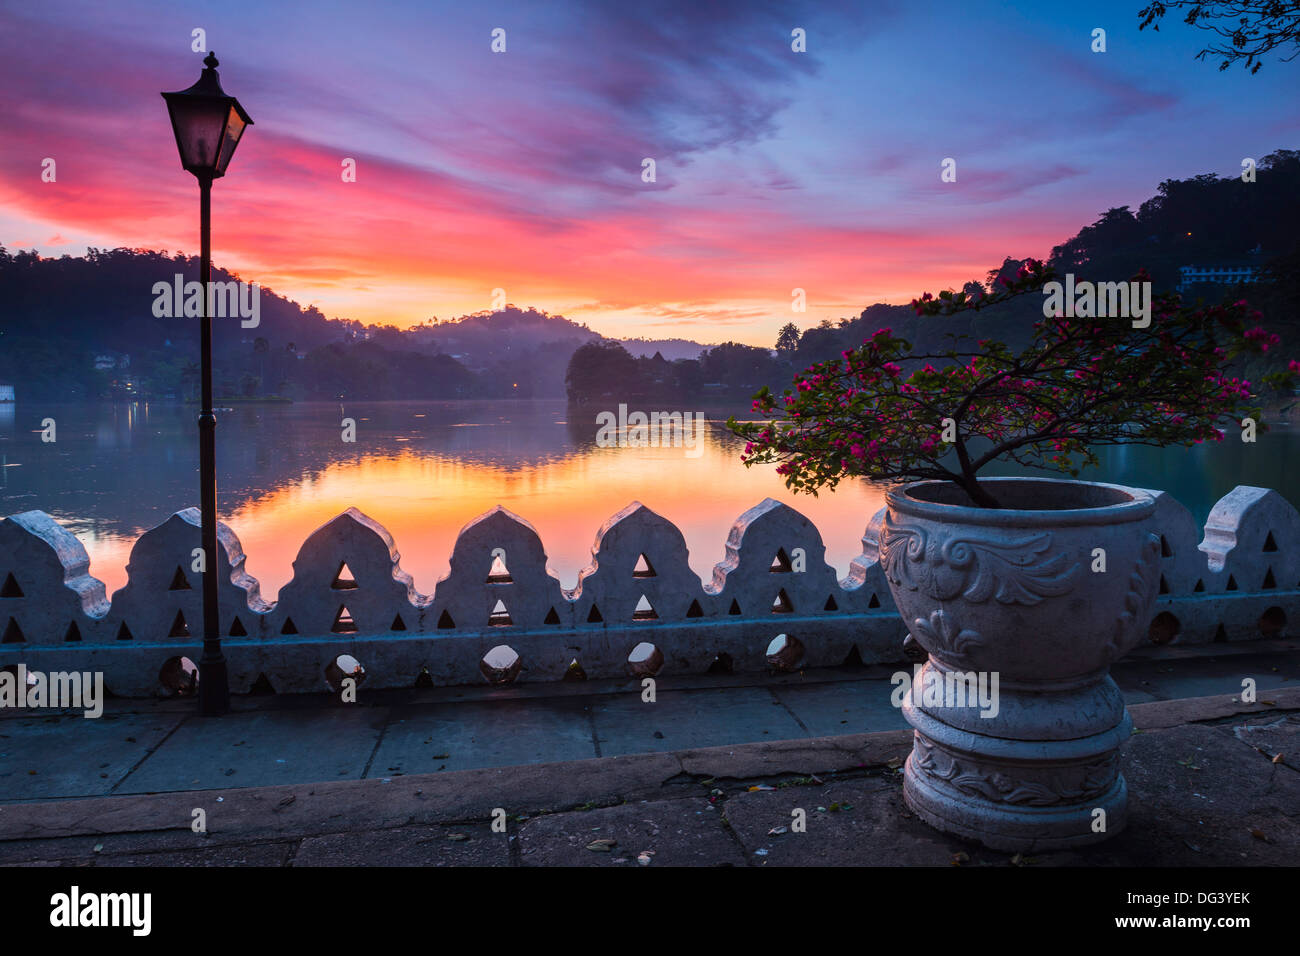 Dramatic sunrise at Kandy Lake and the Clouds Wall (Walakulu Wall), Kandy, Central Province, Sri Lanka, Asia - Stock Image